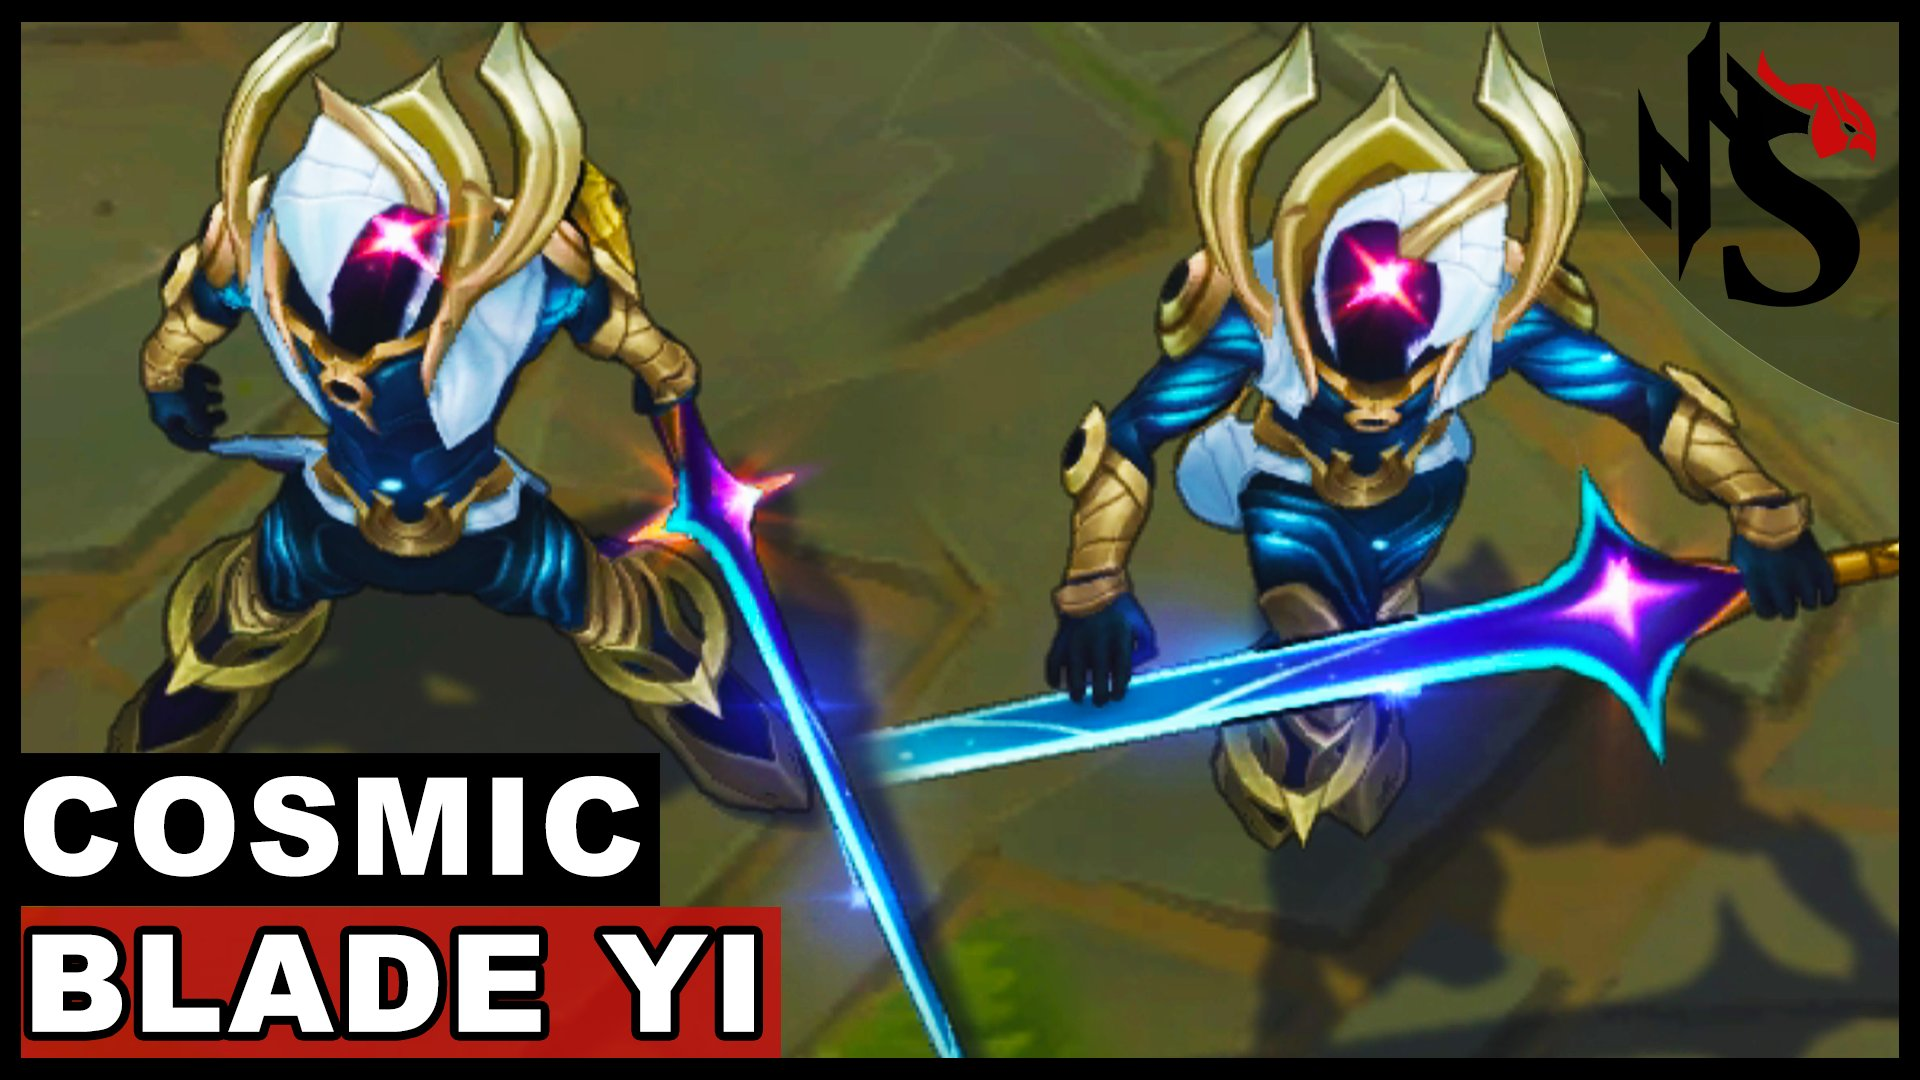 Squpo On Twitter Cosmic Blade Master Yi Skin Spotlight League